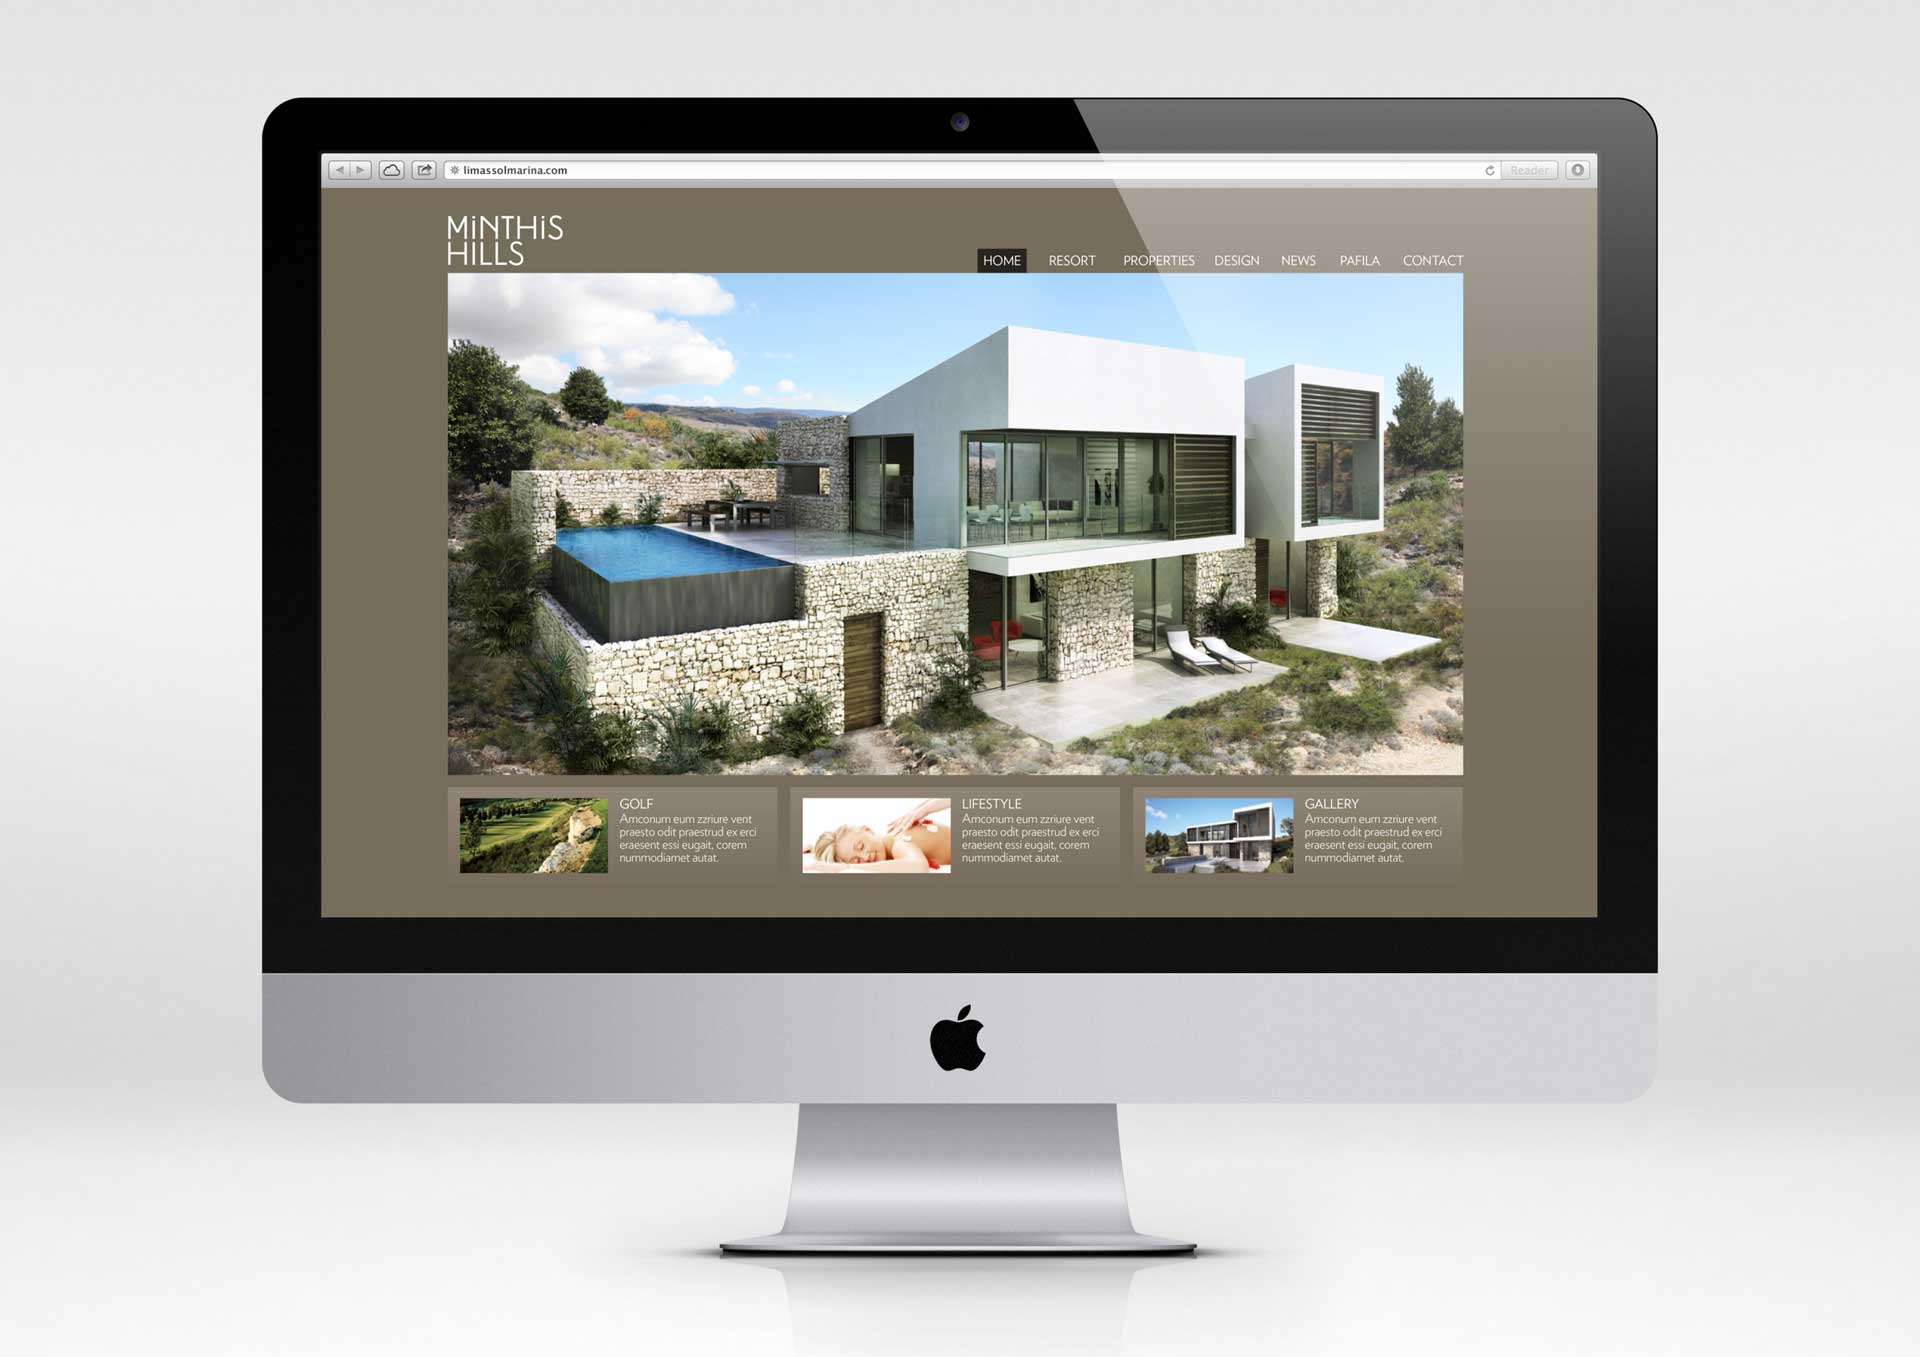 minthis-hills-property-website-2